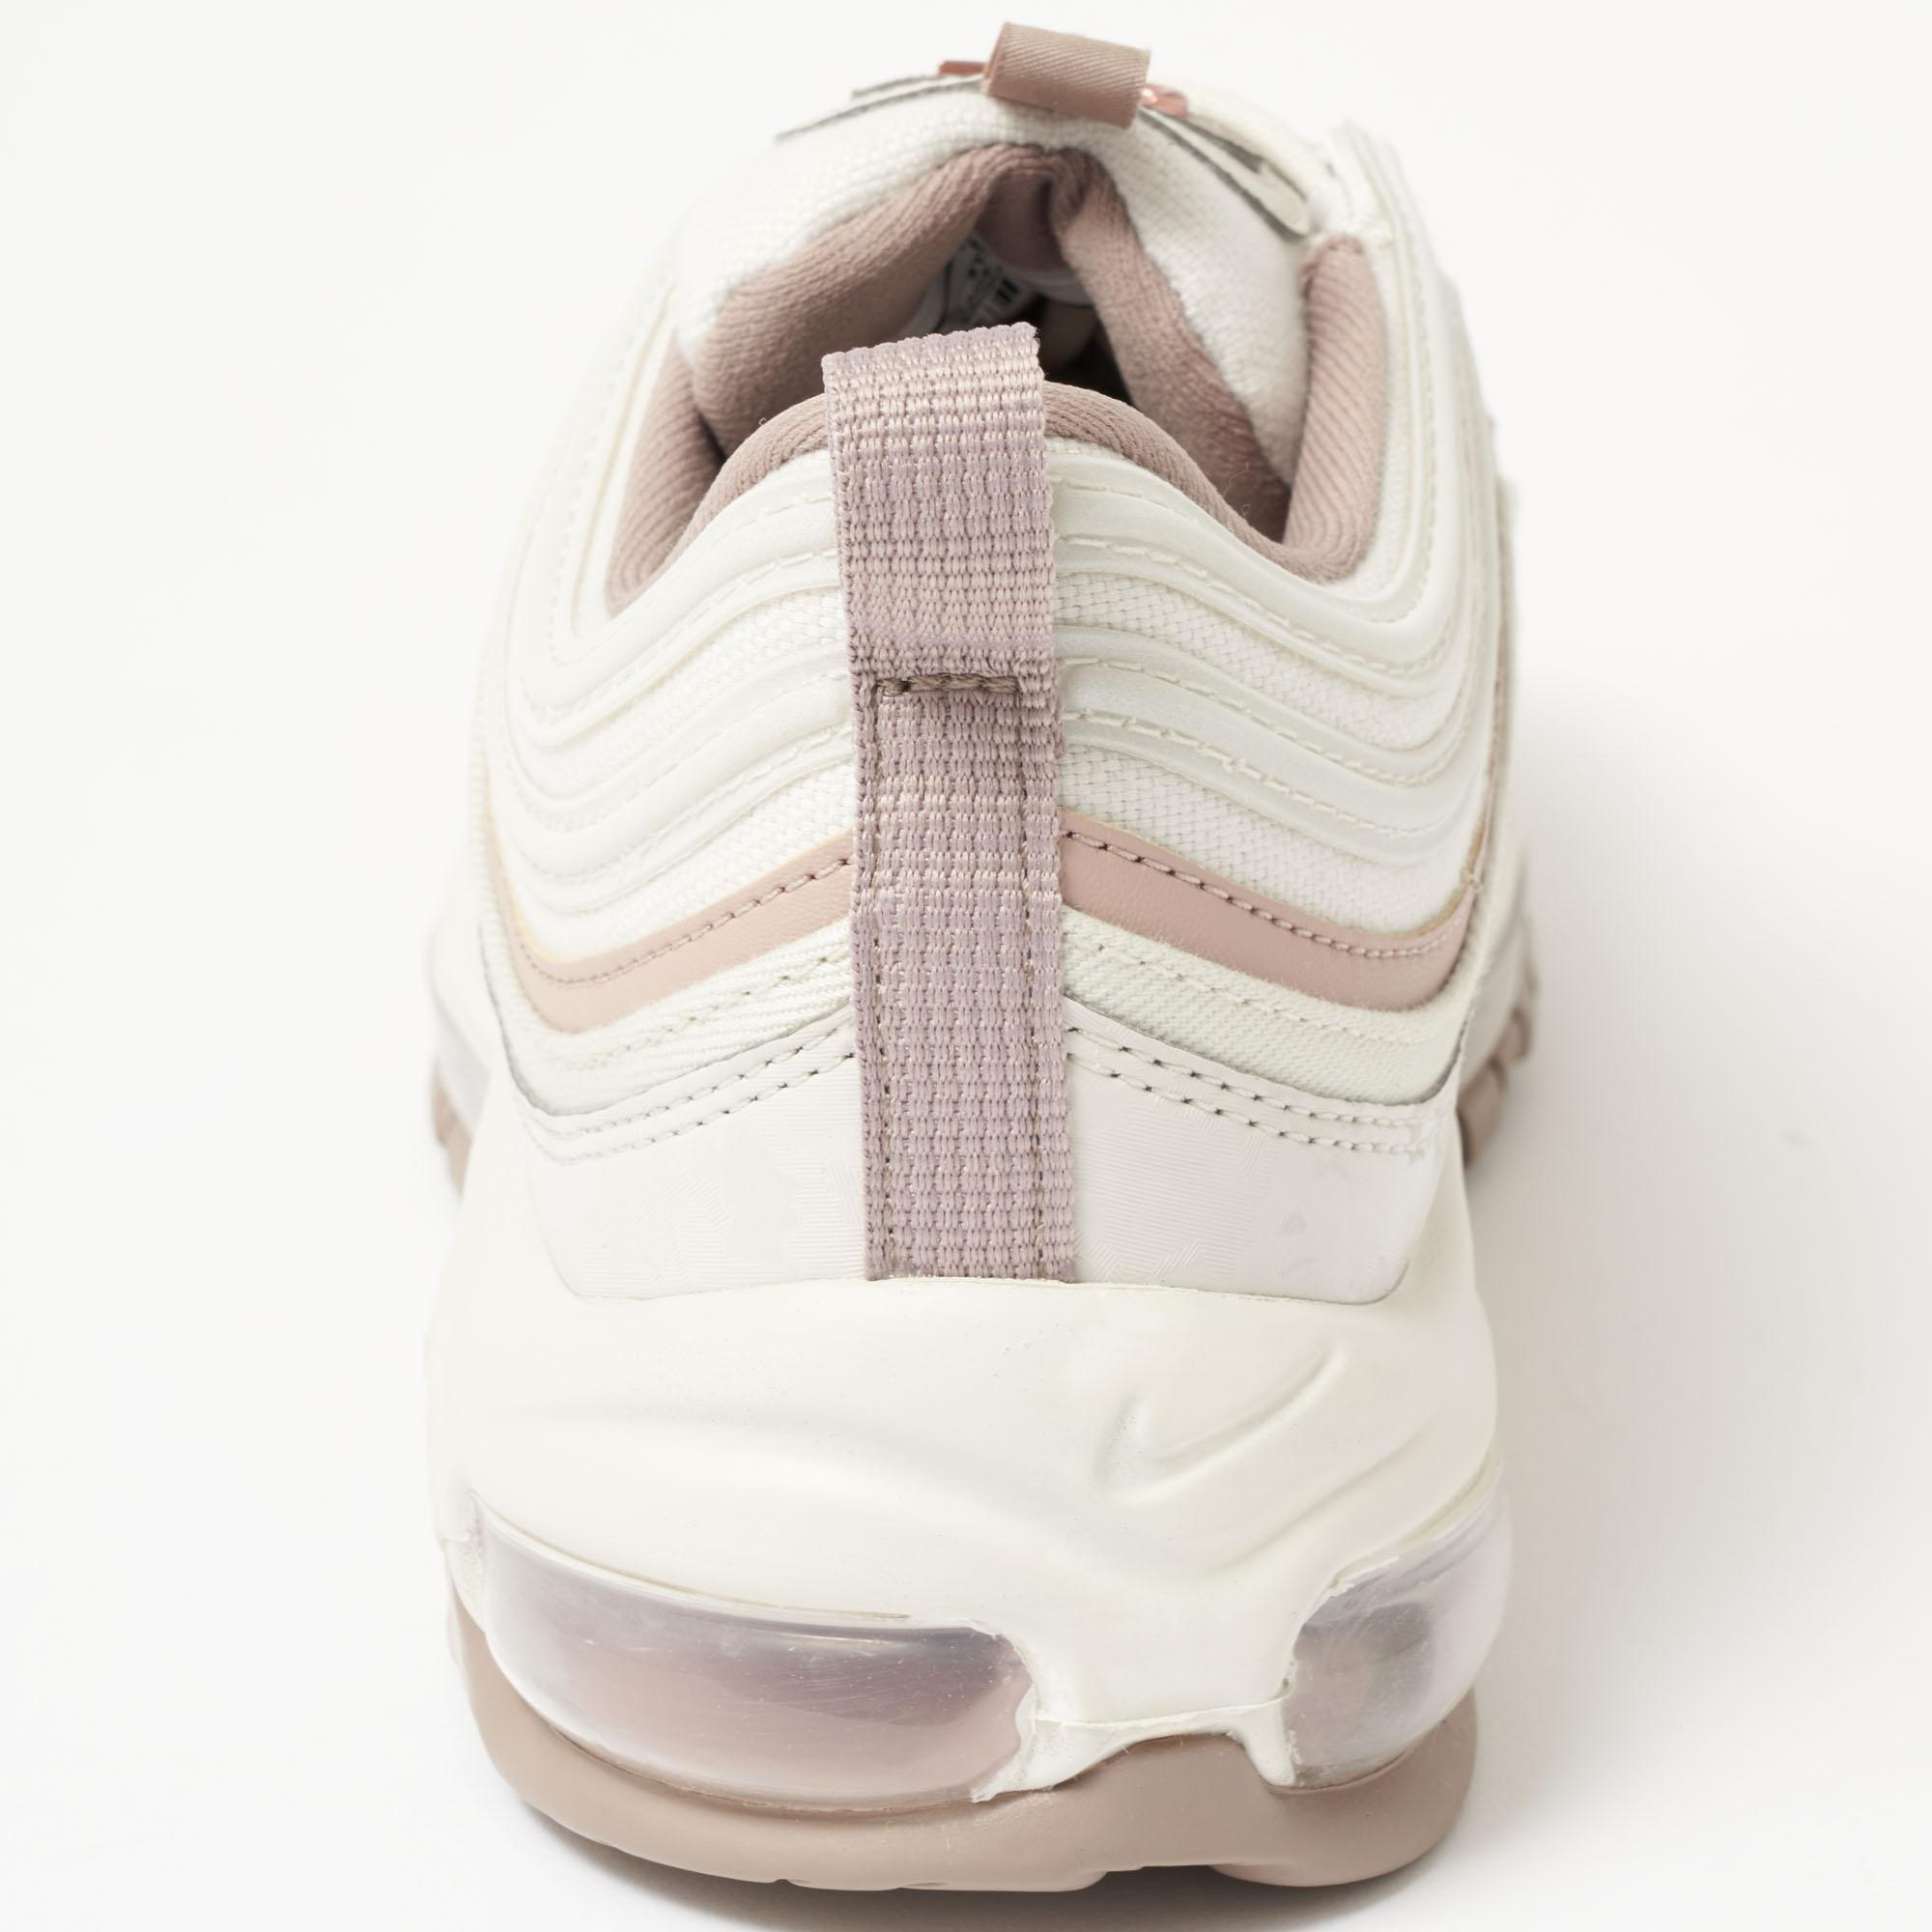 36438202c9abe4 Lyst - Nike Air Max 97 Prm - Light Bone   Diffused Taupe for Men